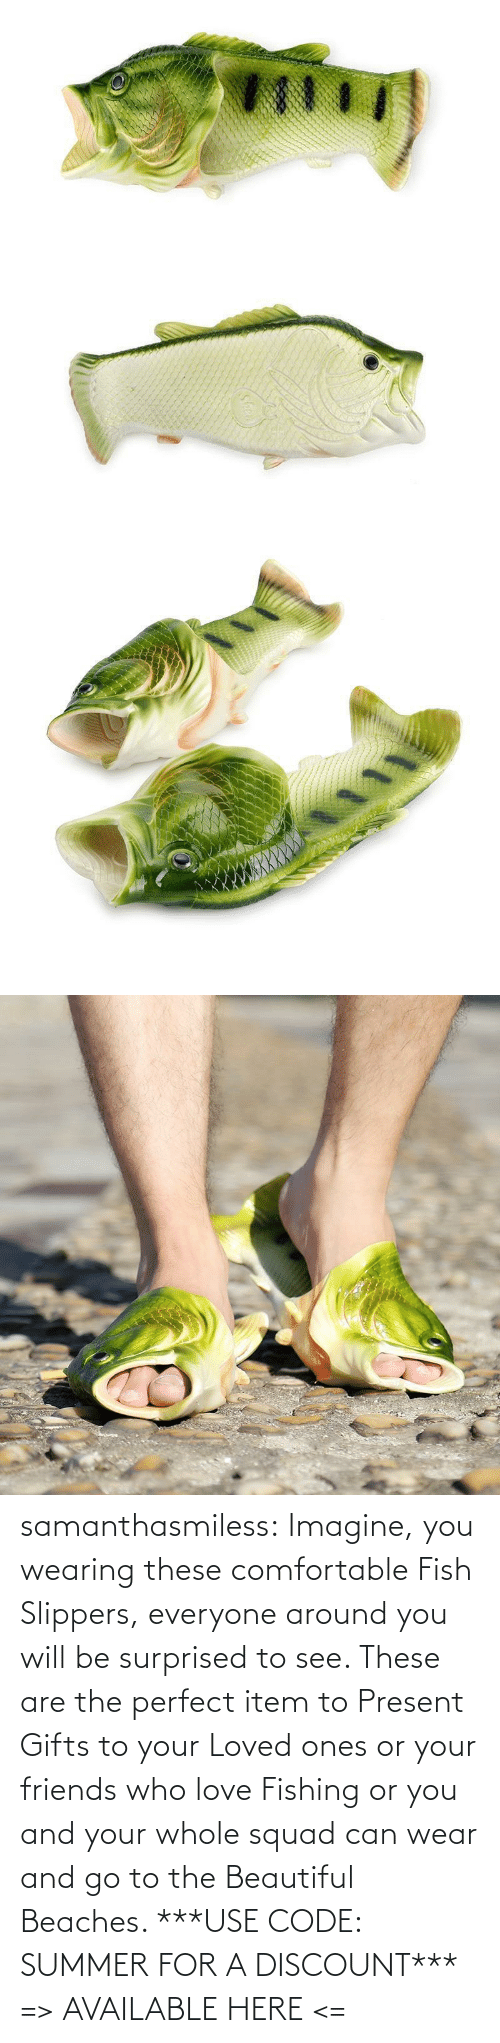 everyone: samanthasmiless: Imagine, you wearing these comfortable Fish Slippers, everyone around you will be surprised to see. These are the perfect item to Present Gifts to your Loved ones or your friends who love Fishing or you and your whole squad can wear and go to the Beautiful Beaches.  ***USE CODE: SUMMER FOR A DISCOUNT*** => AVAILABLE HERE <=